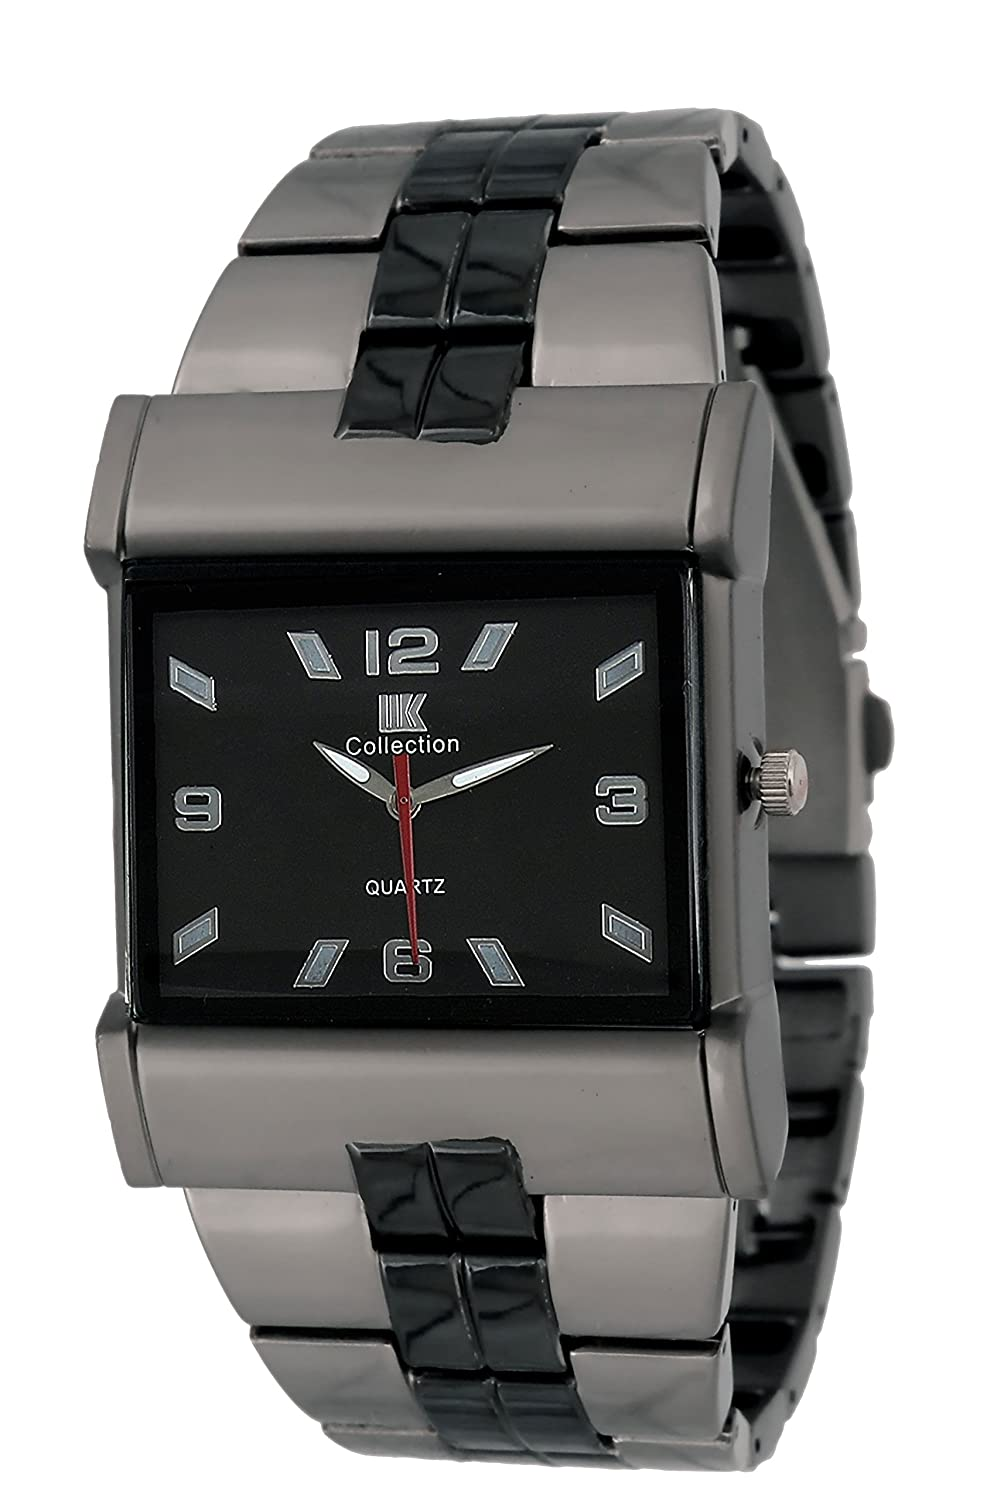 d436e94cd7e Buy IIk Collection Watches Quartz Movement Analogue Black Dial Men s Watch  - IIK027 Online at Low Prices in India - Amazon.in